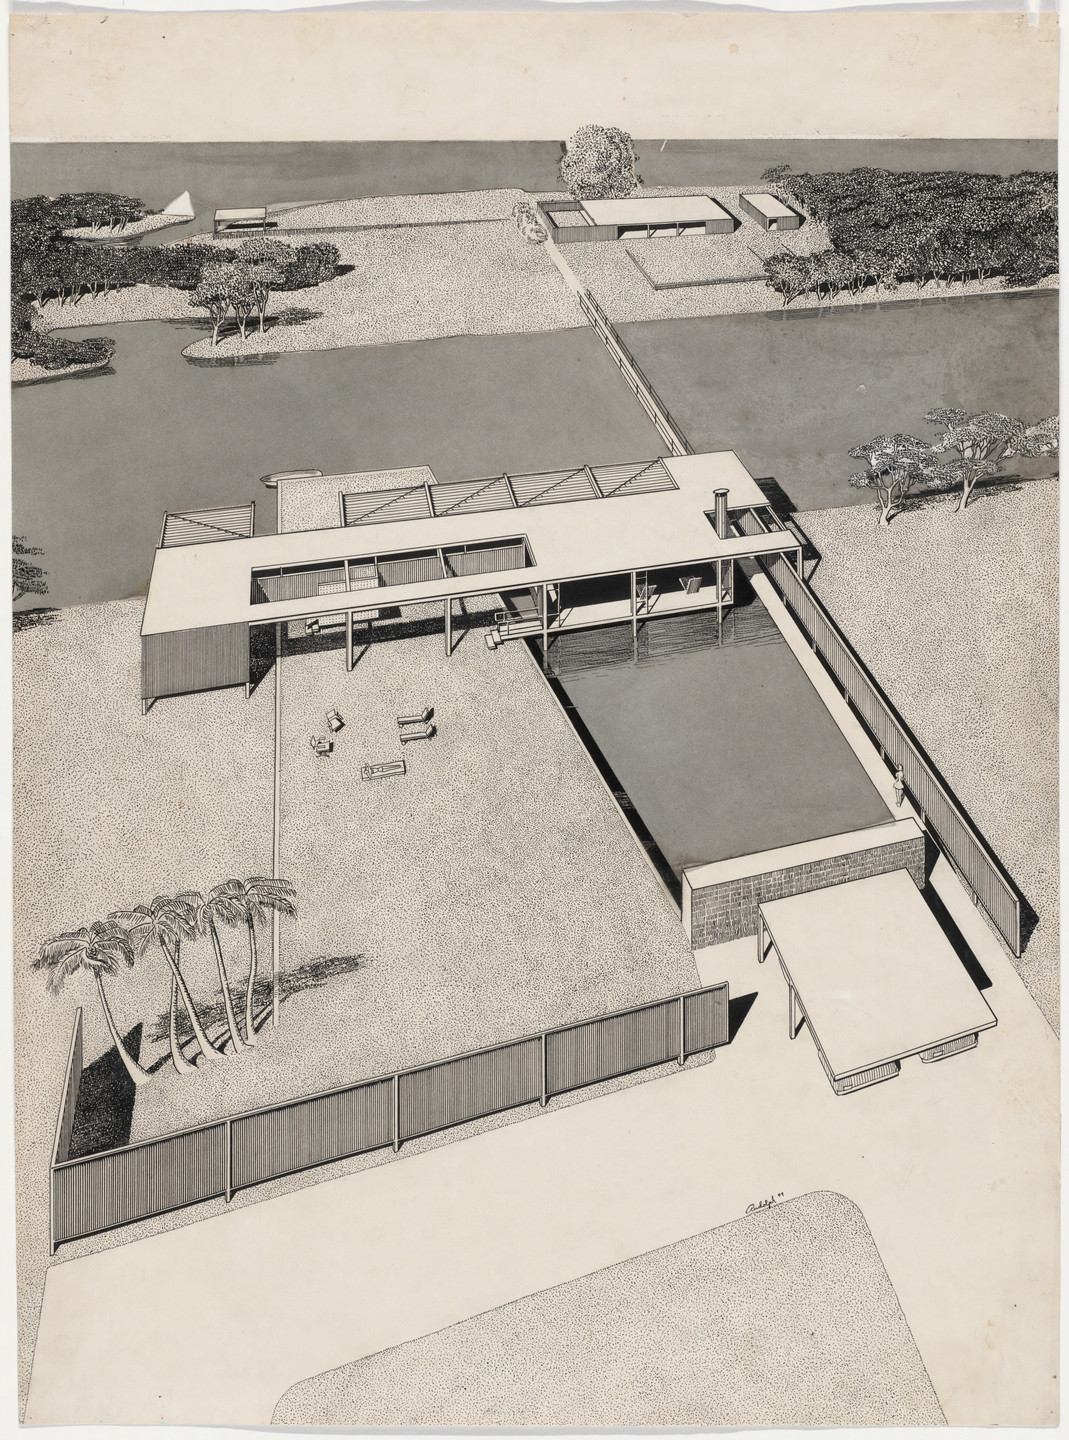 Paul Rudolph. Finney Guest House Project, Siesta Key, Florida, Aerial perspective. 1949